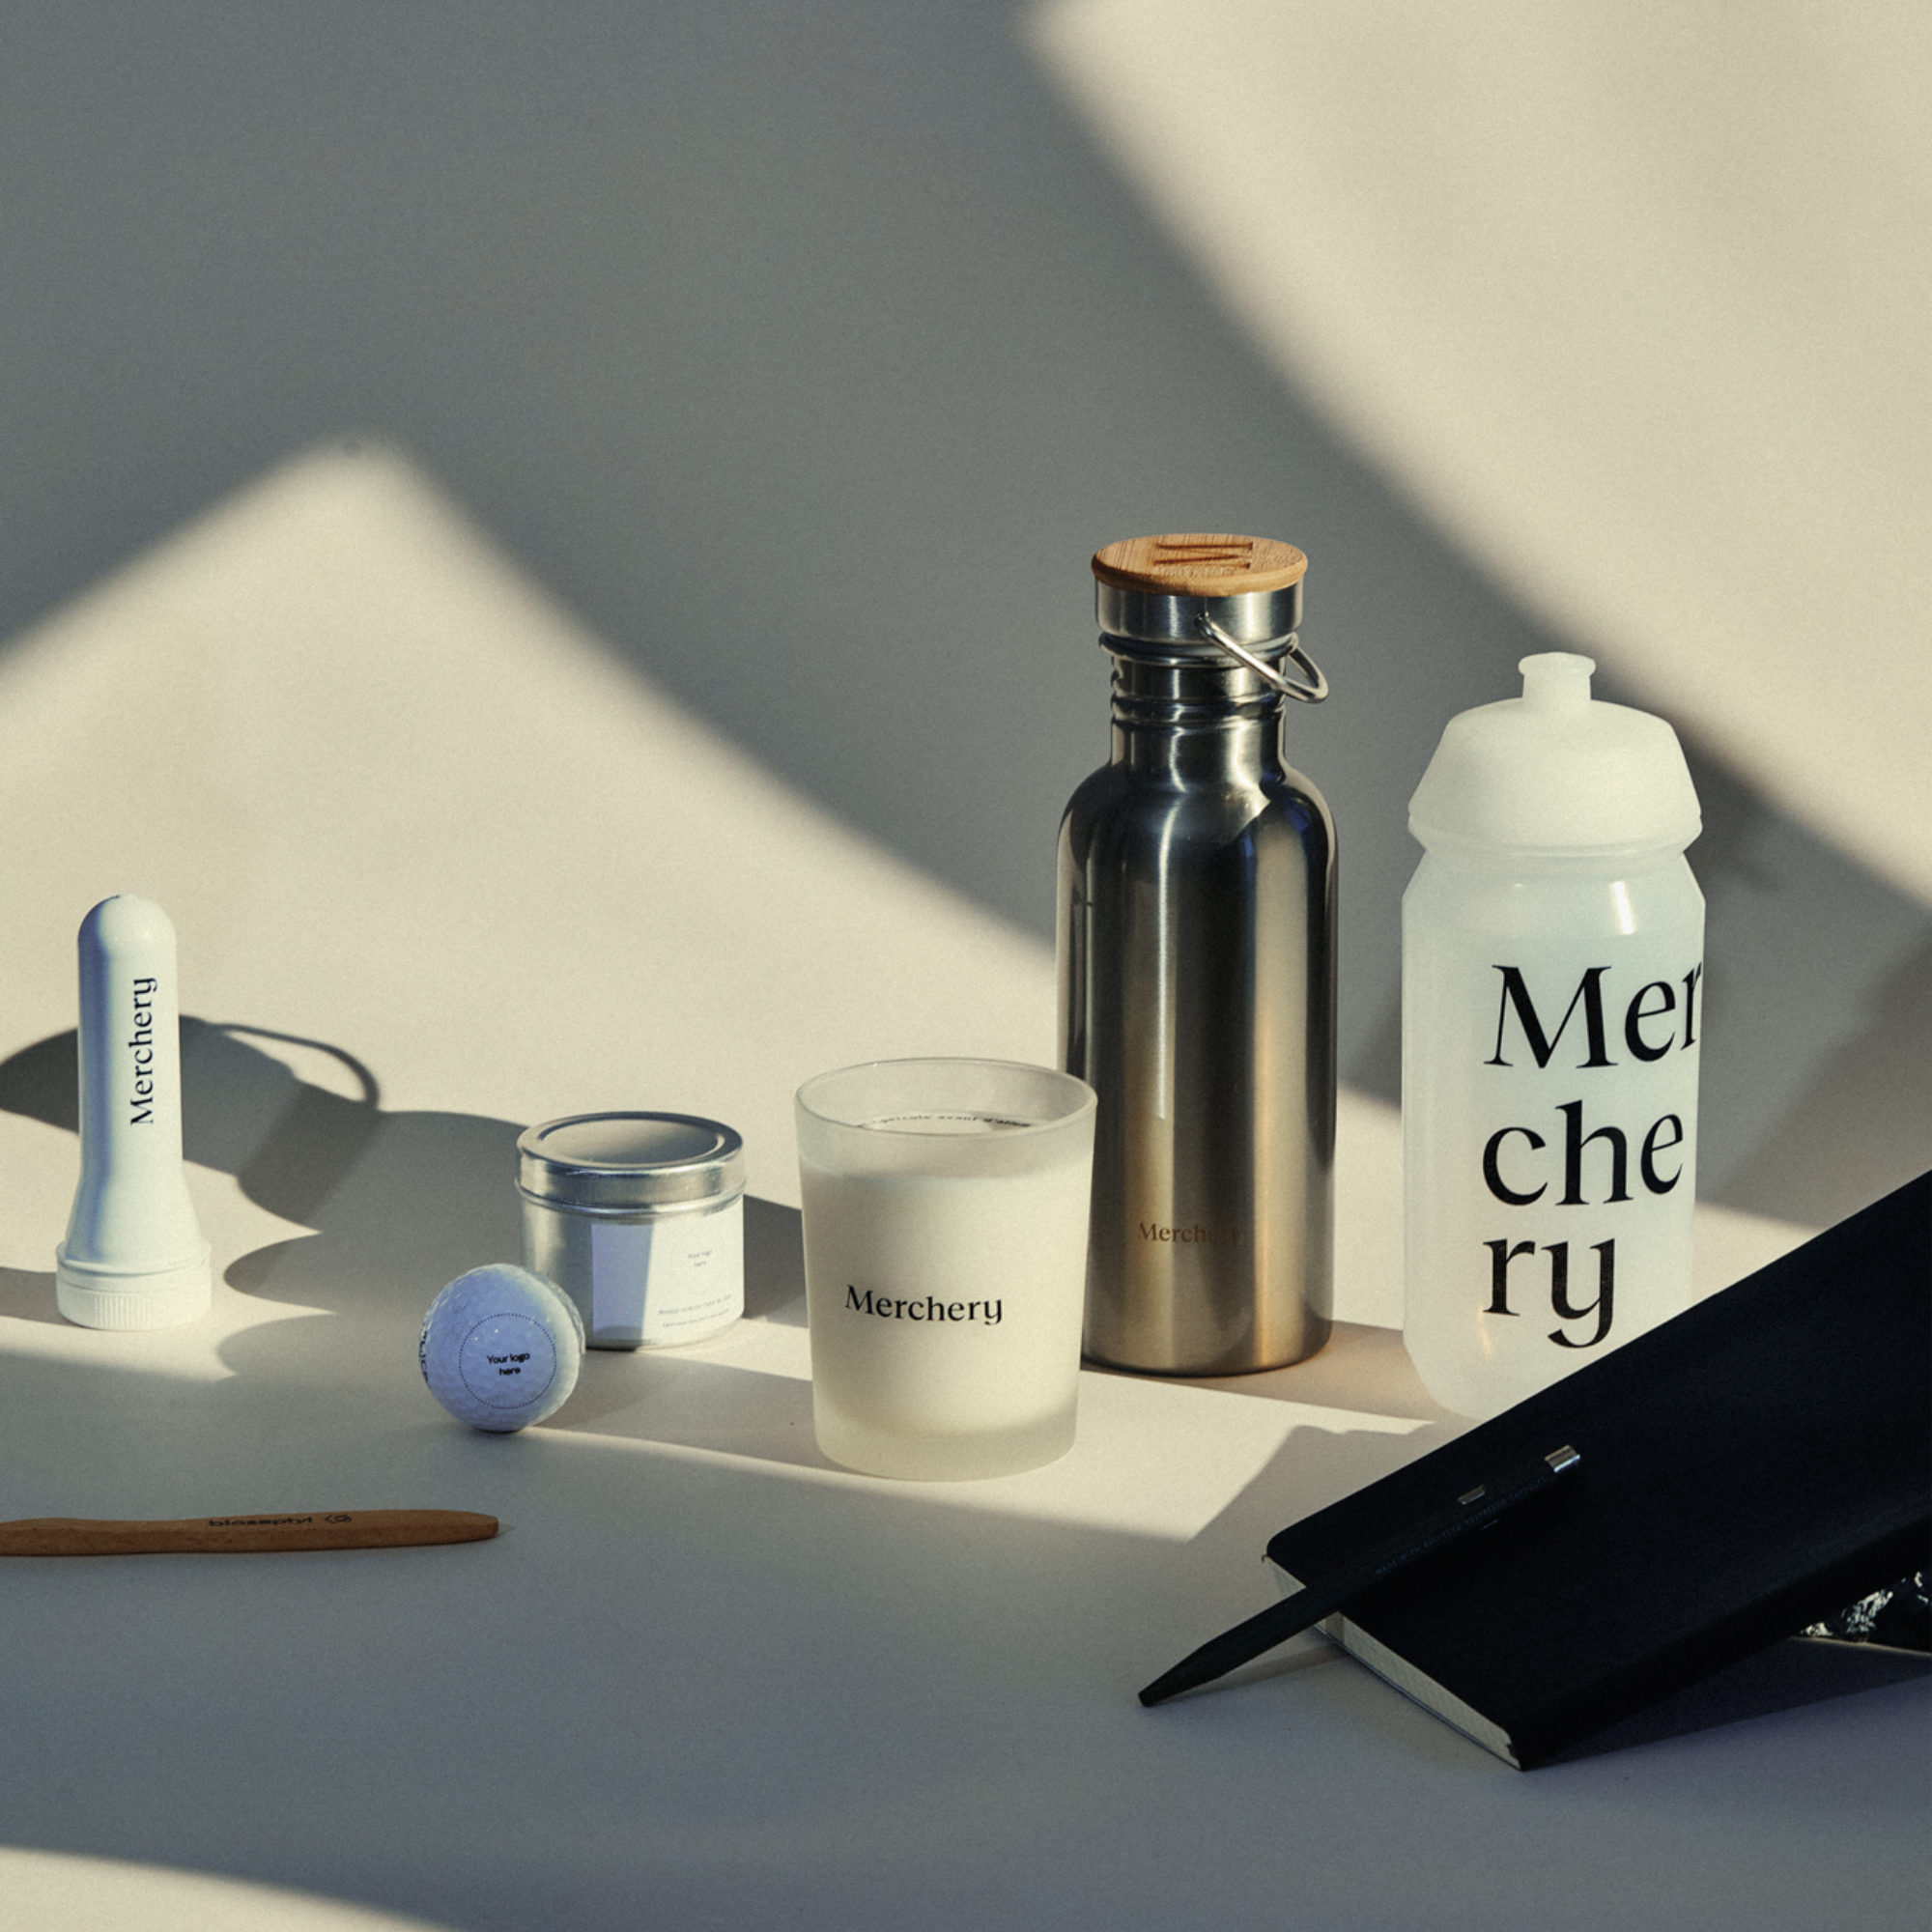 Eco friendly corporate gifts by Merchery